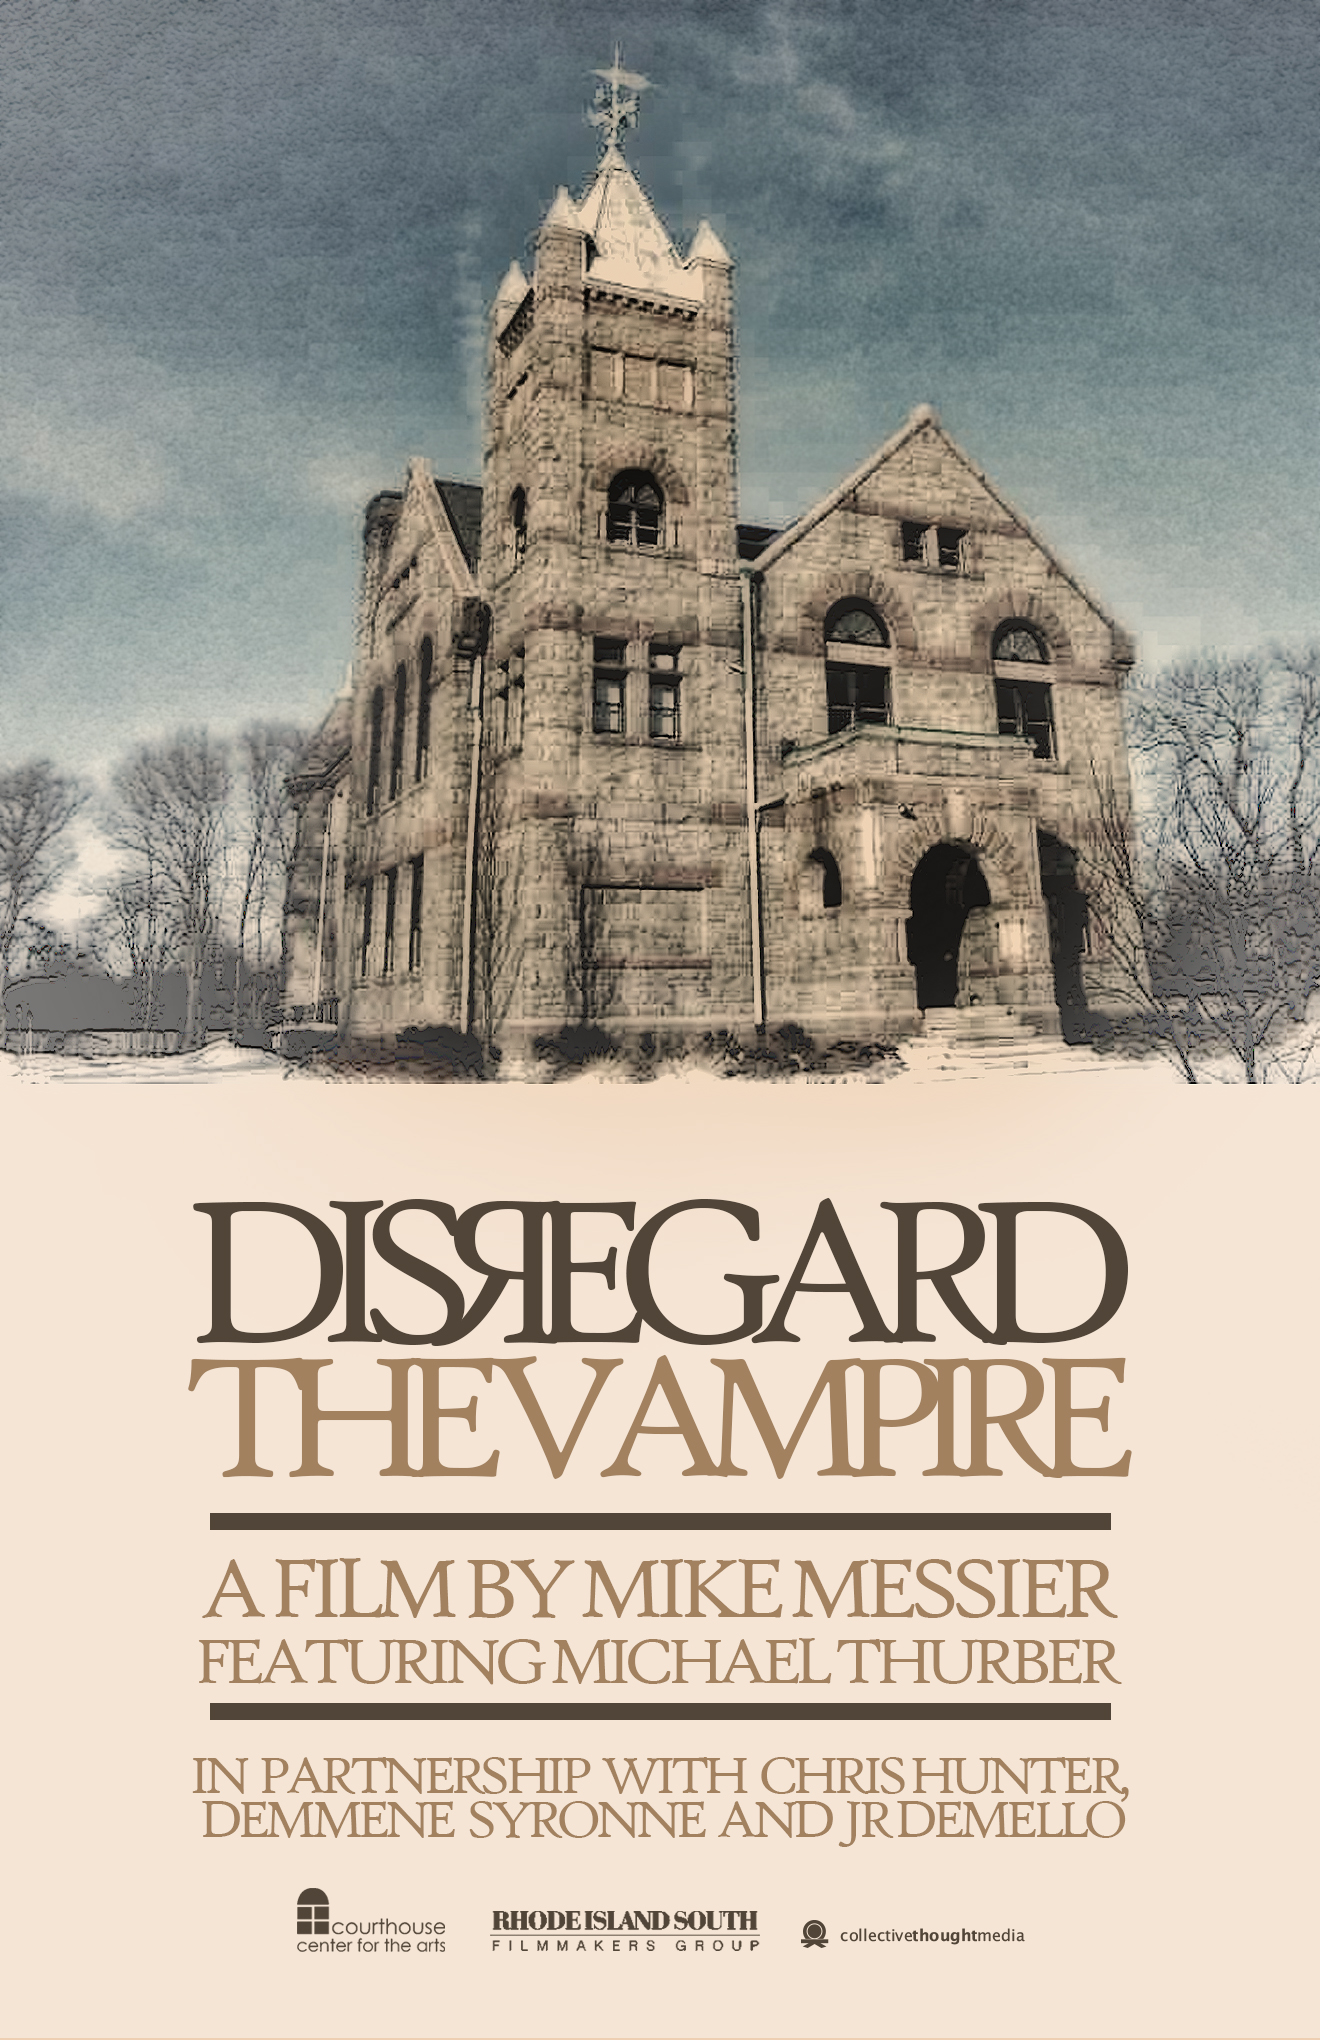 Mike Messier's 'Disregard The Vampire' filming in Rhode Island, 2014.